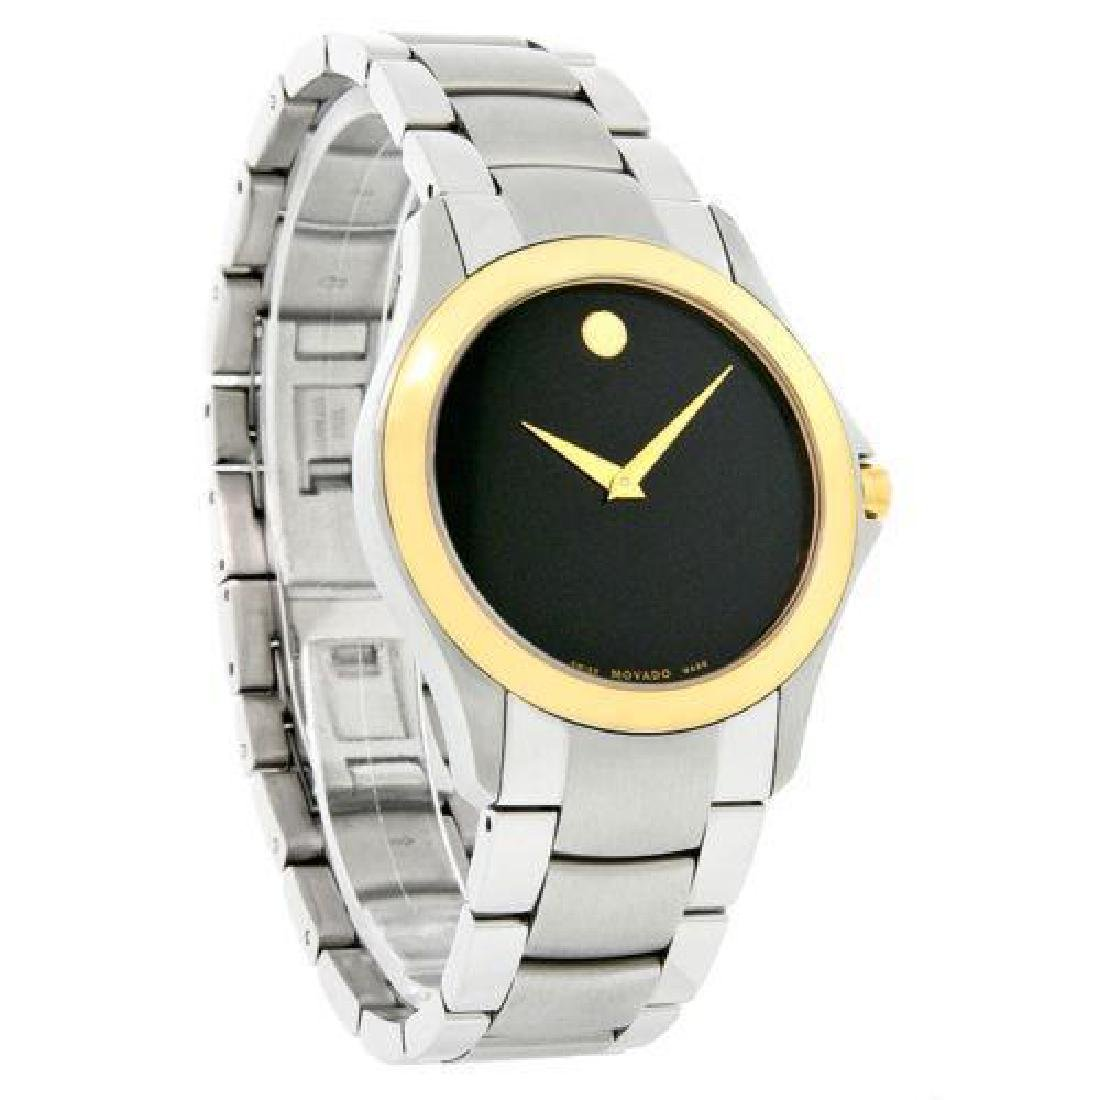 Movado Men's Two Tone Watch